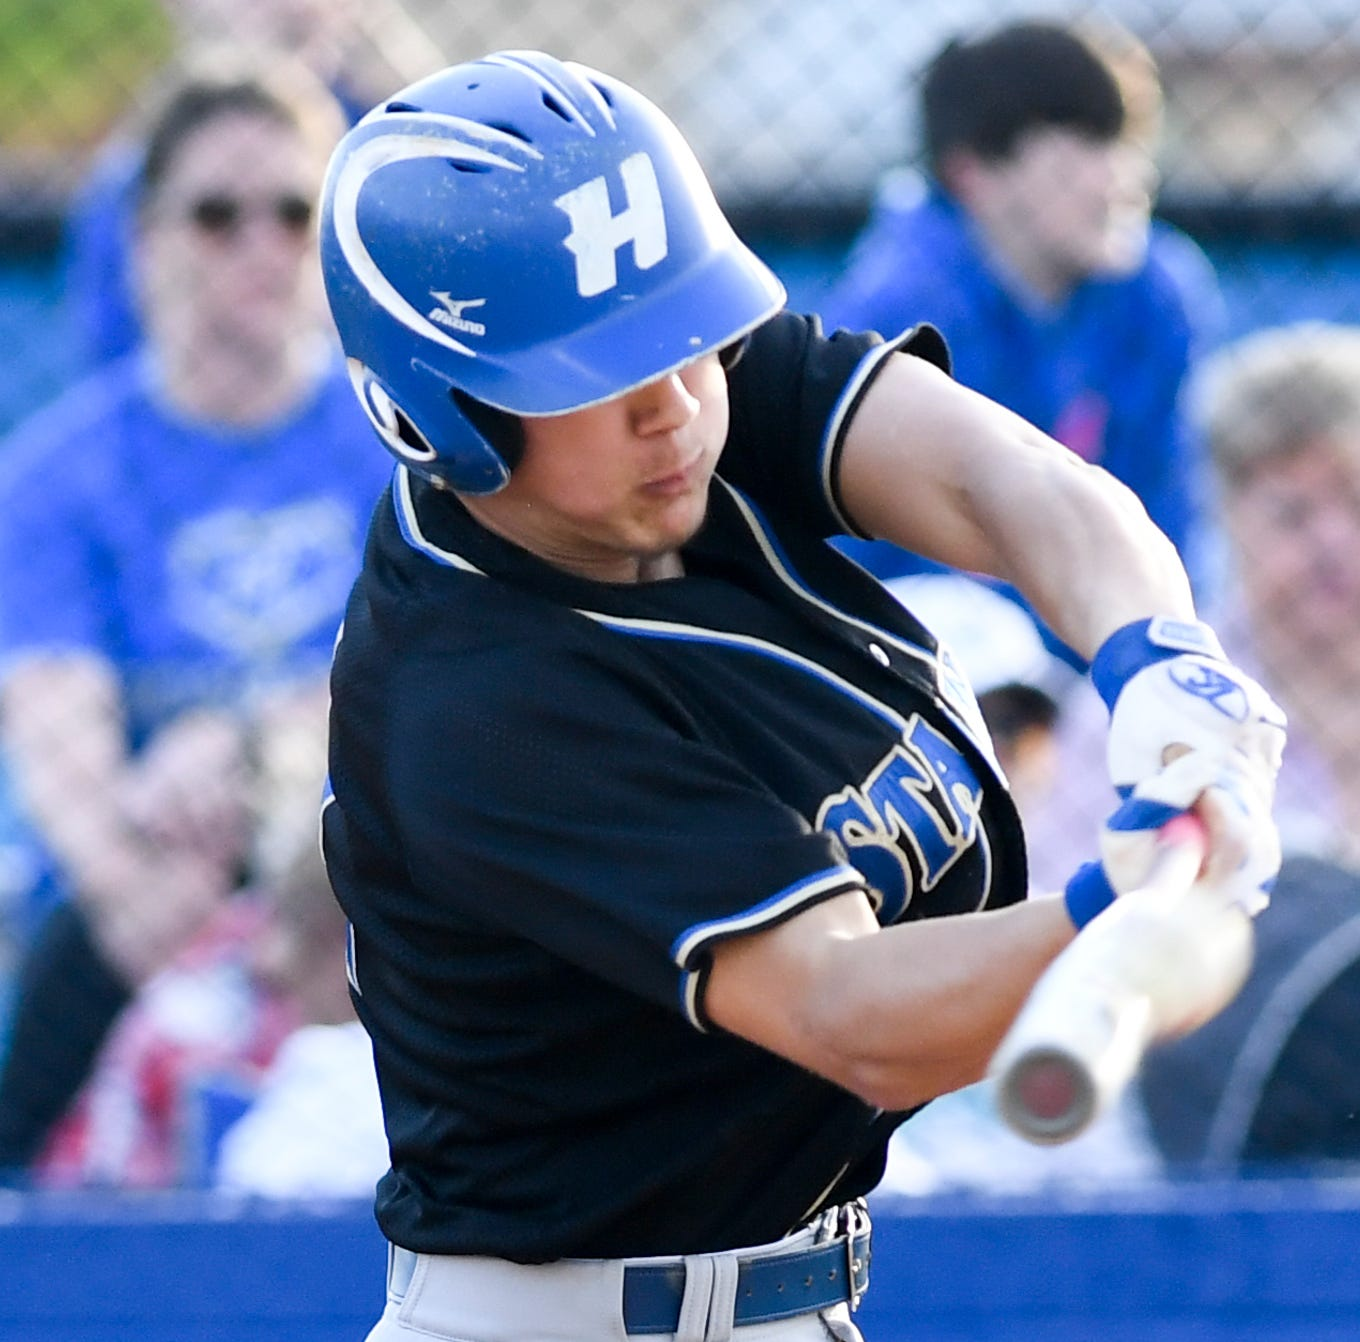 Tennessee baseball commitment Hunter Ensley showing why he is an SEC-caliber player